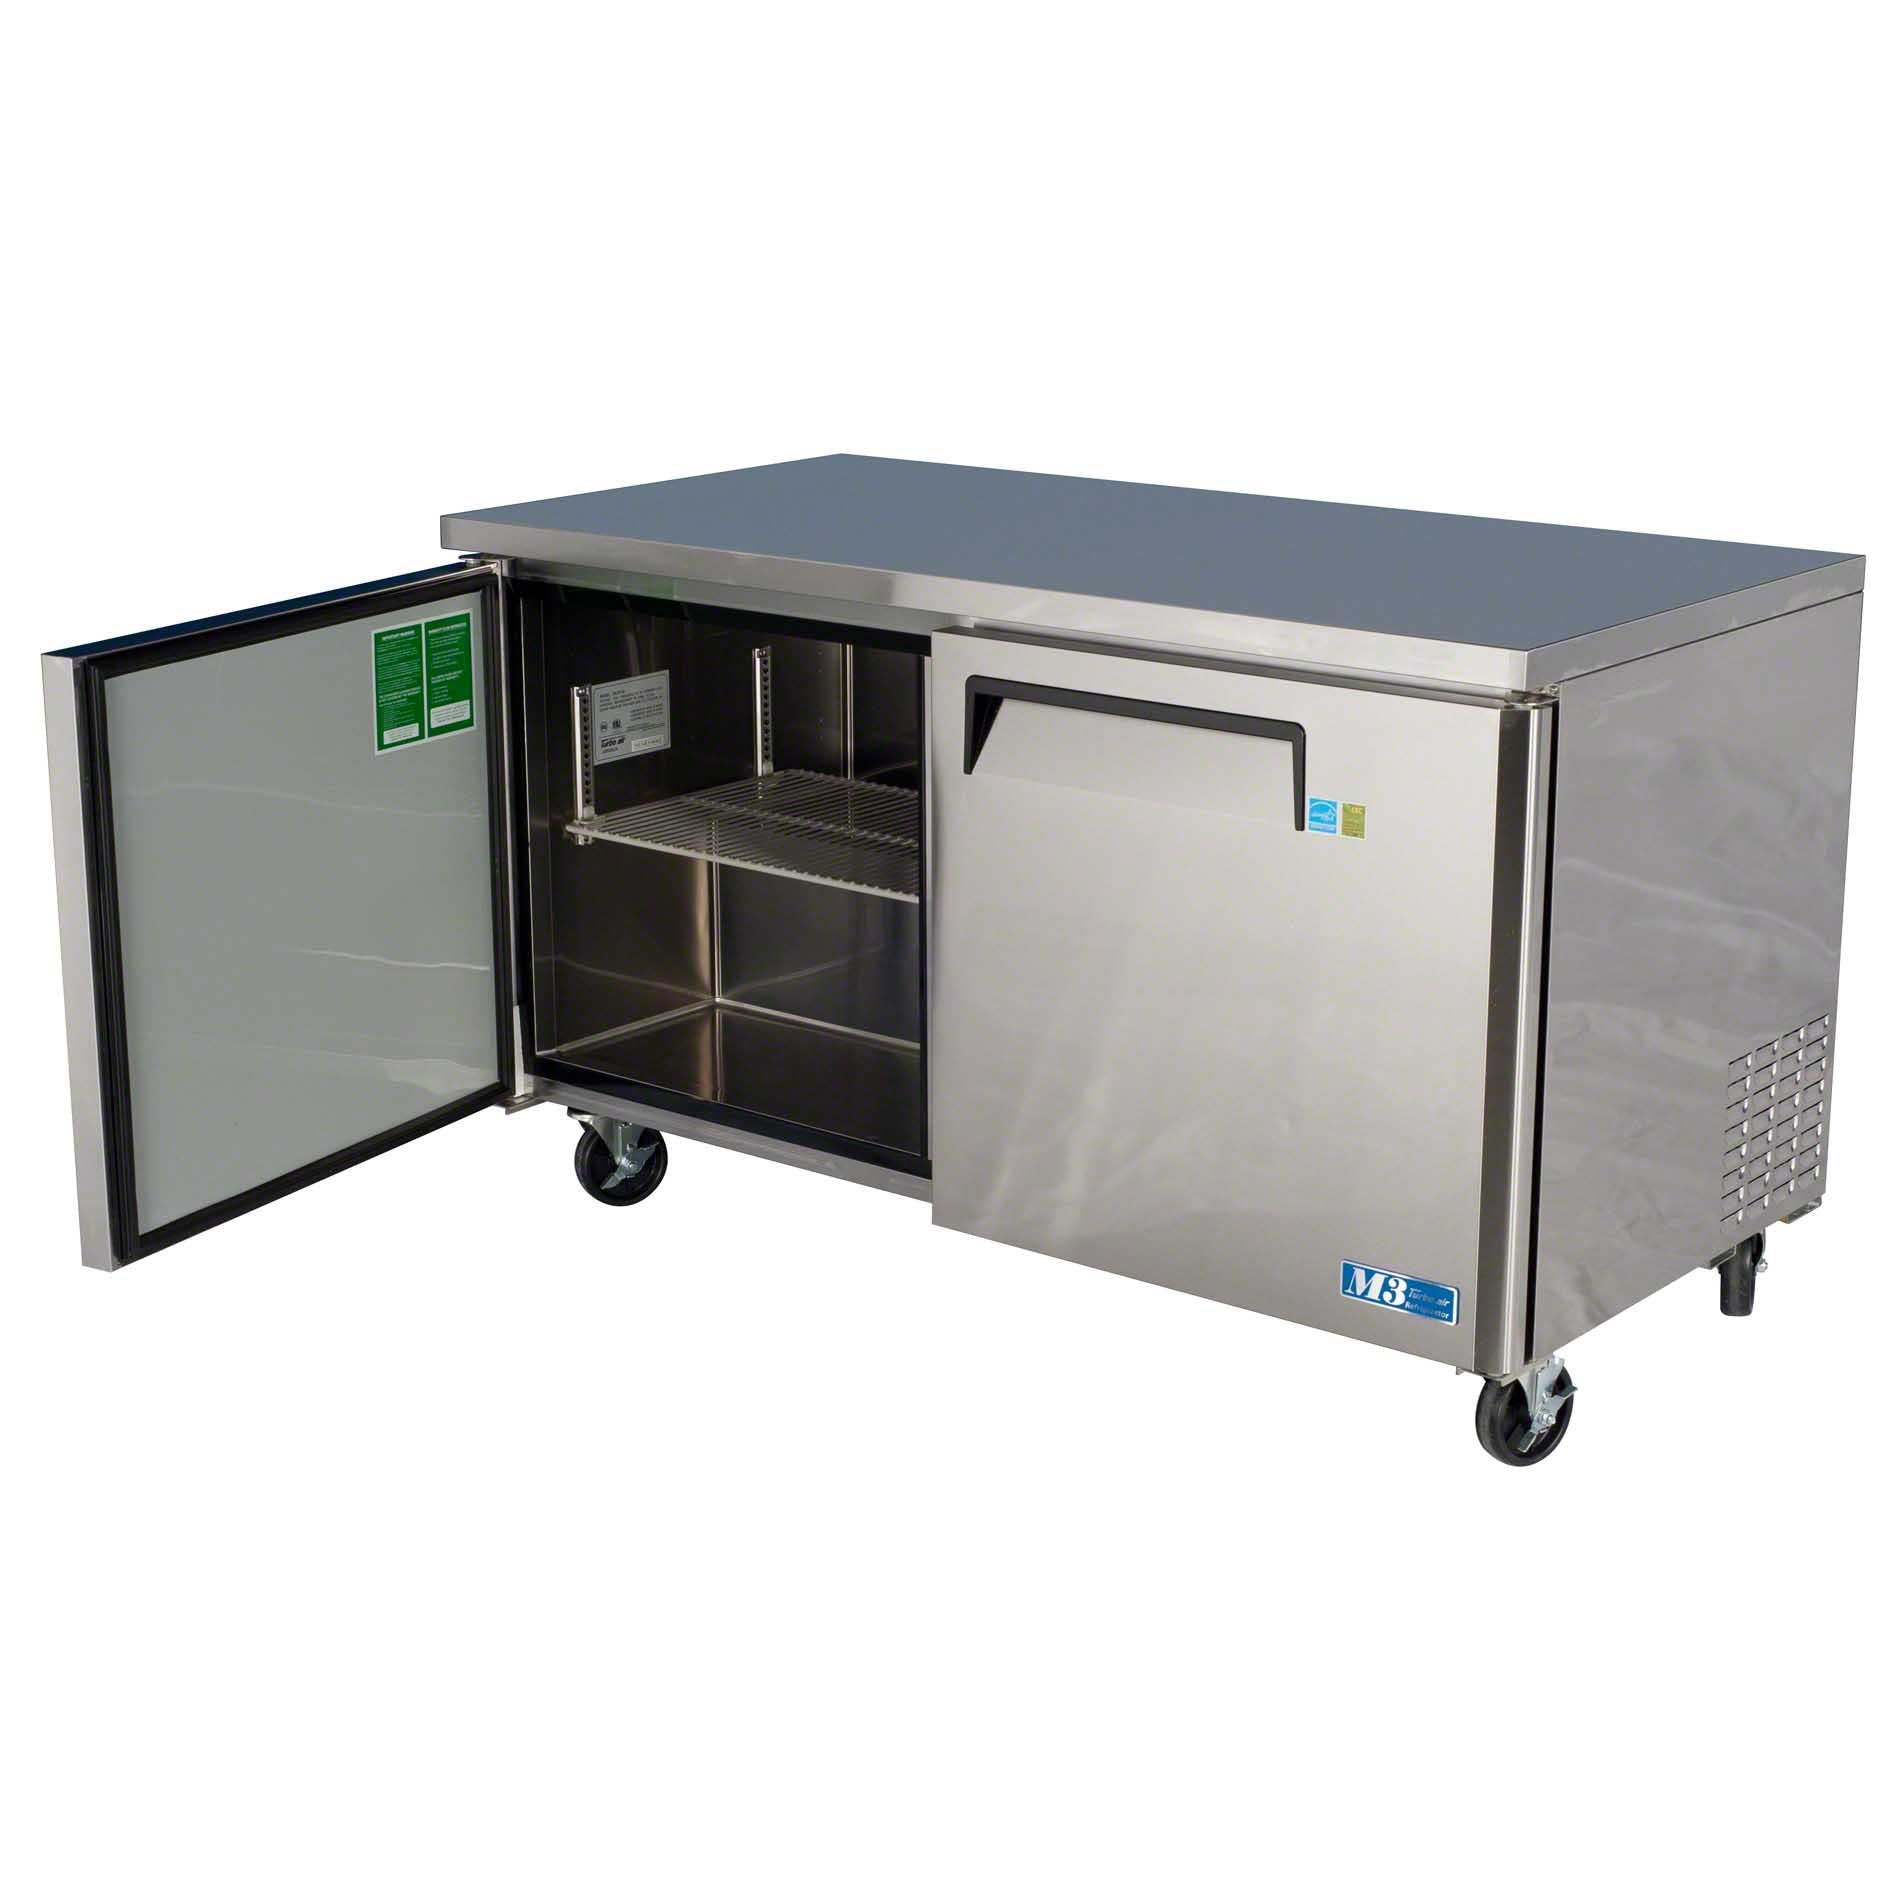 """Turbo Air - MUR-60 60"""" Undercounter Refrigerator – M3 Series Commercial refrigerator sold by Food Service Warehouse"""